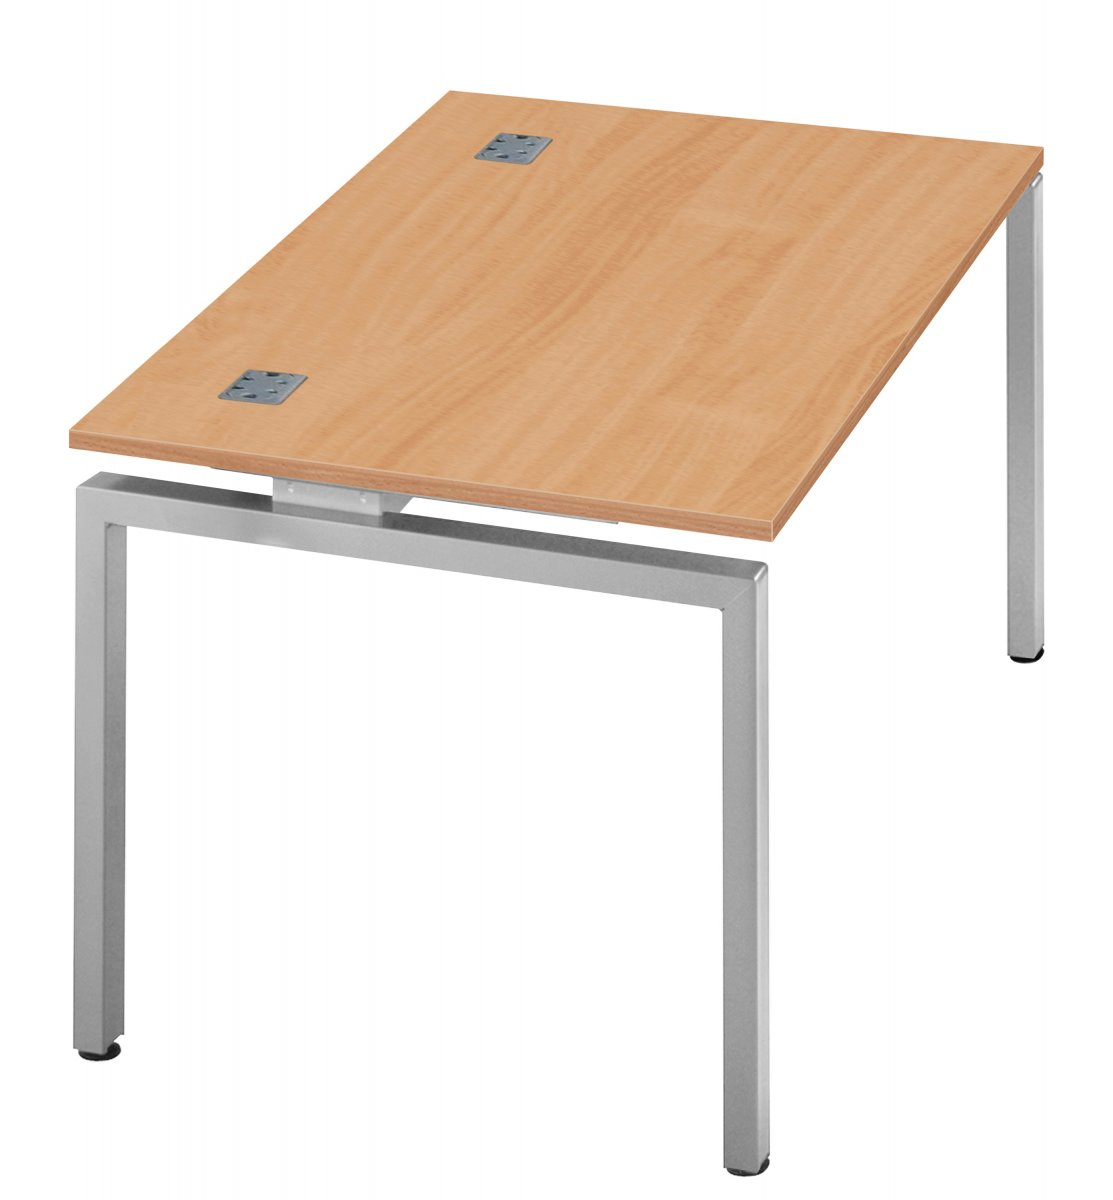 Fraction Bench Single 140 Starter Workstation - Beech